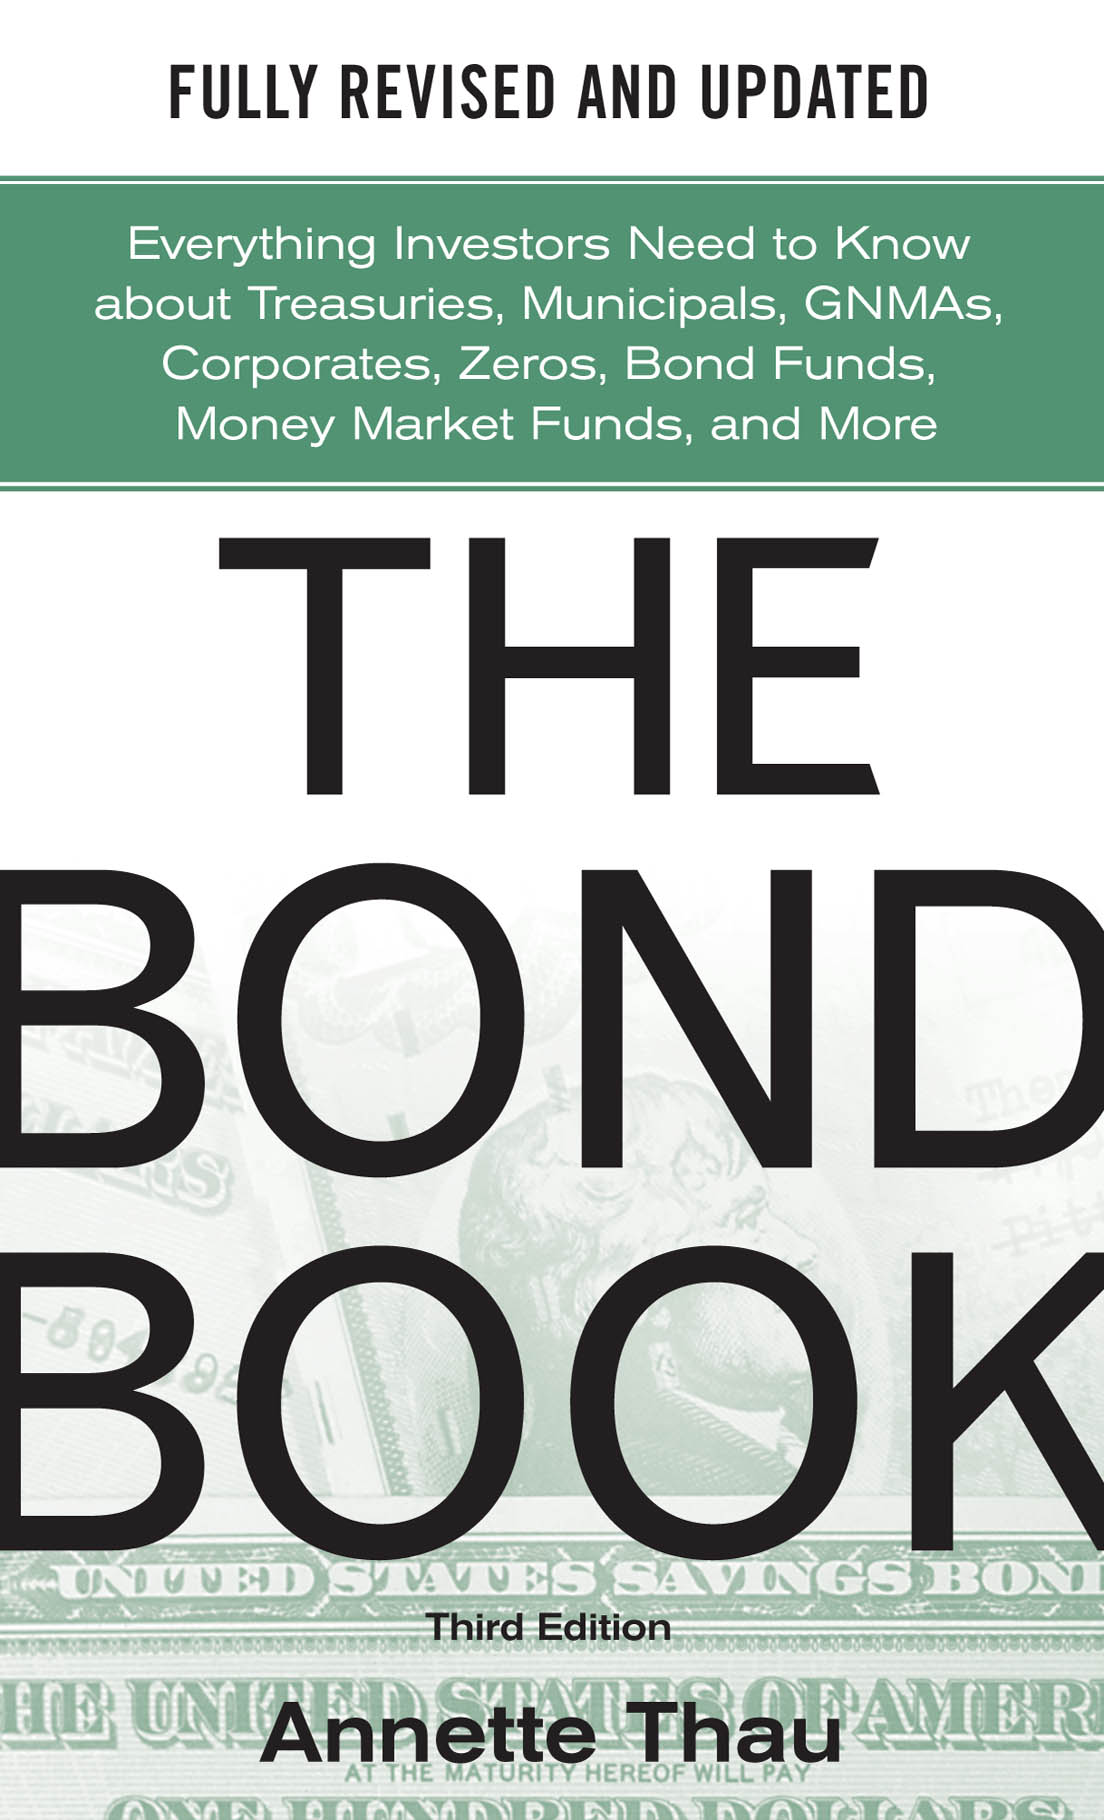 Download Ebook The Bond Book, Third Edition: Everything Investors Need to Know About Treasuries, Municipals, GNMAs, Corporates, Zeros, Bond Funds, Money Market Funds, and More (3rd ed.) by Annette Thau Pdf